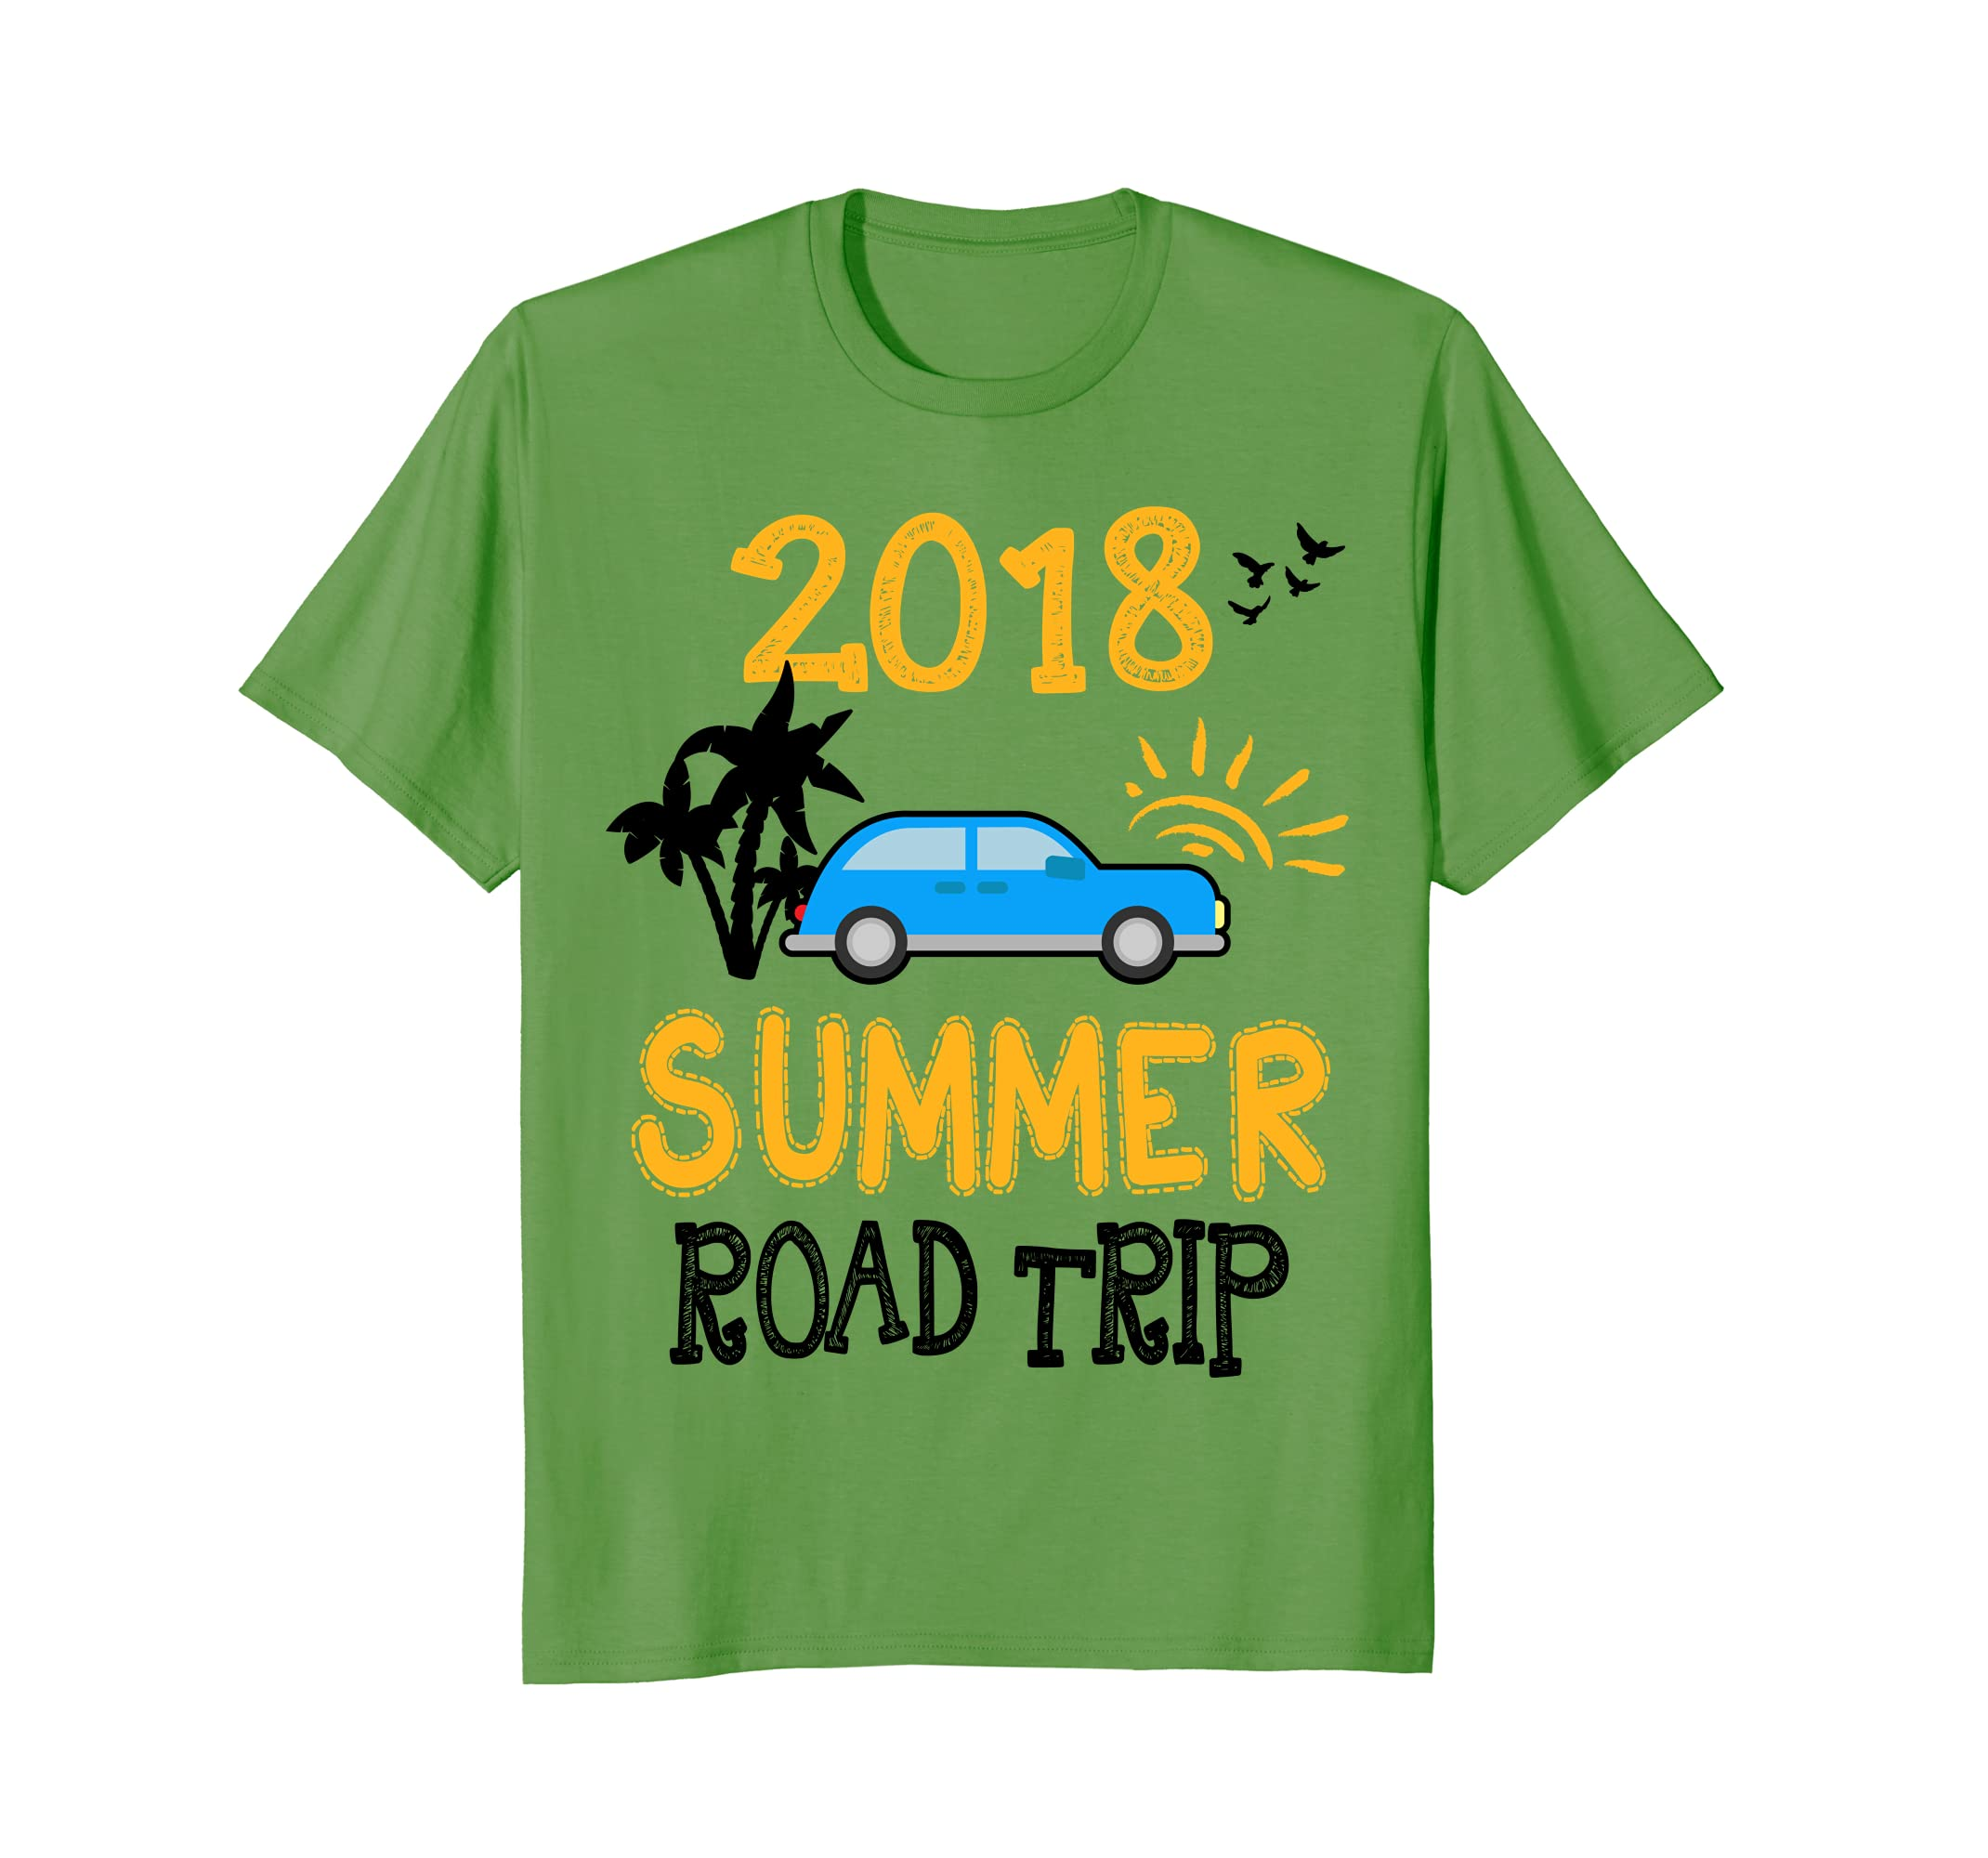 6ef6a43b80198 Amazon.com  Matching Family Summer Road Trip Vacation 2018 T-Shirt  Clothing